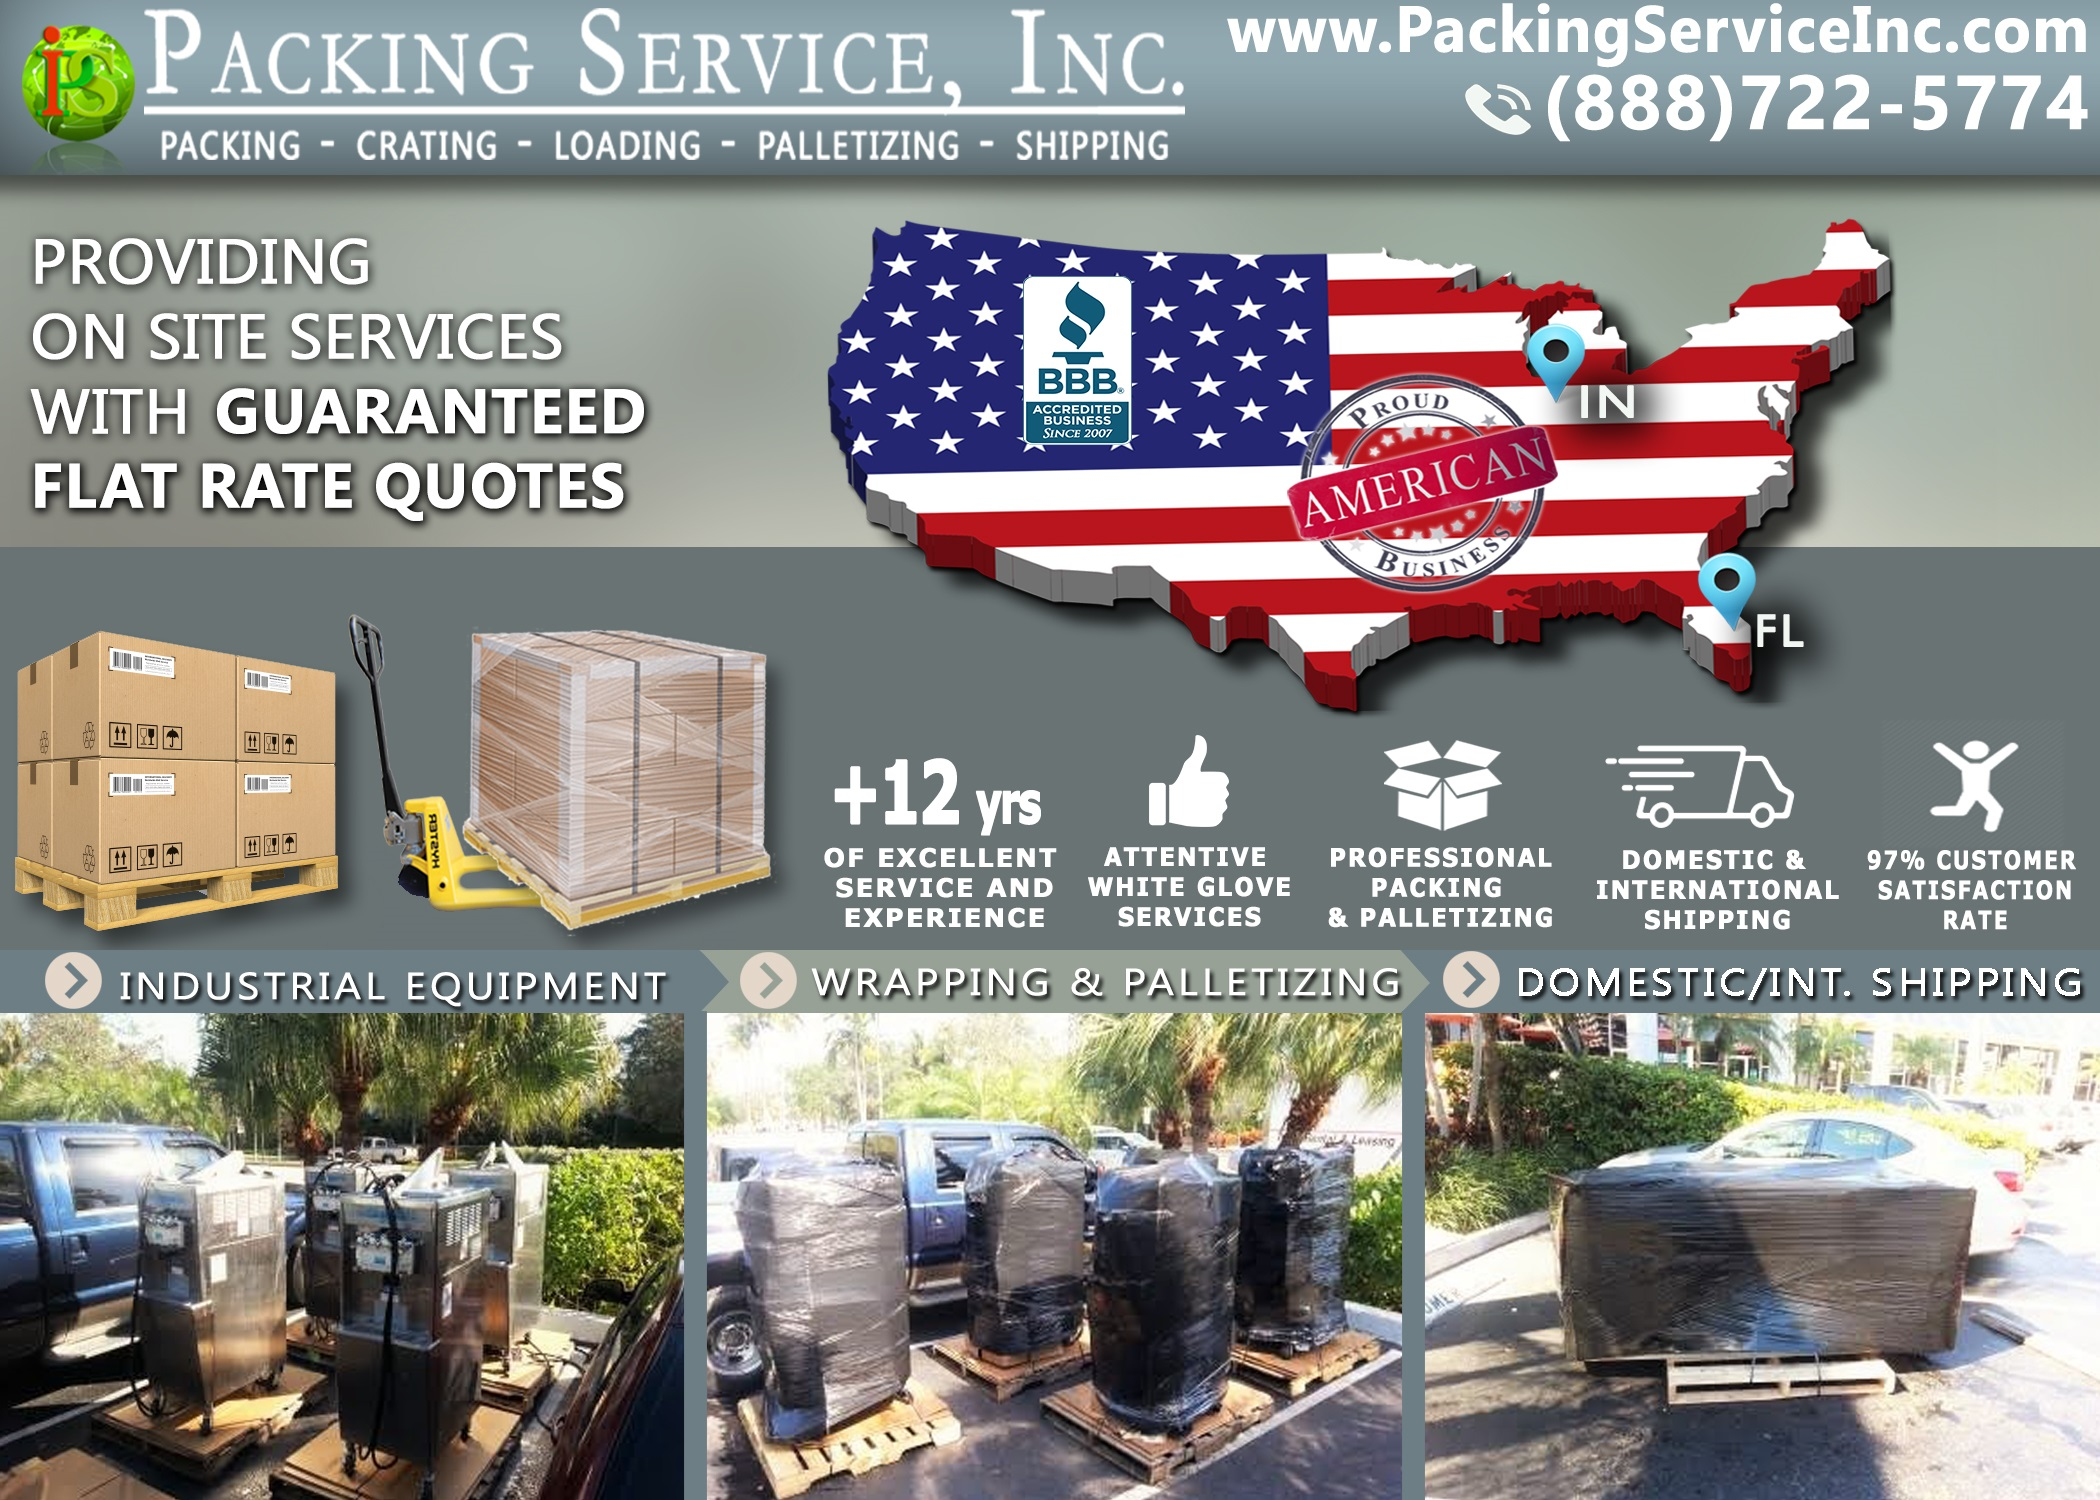 Wrapping Ice Cream machines, palletizing and shipping from Florida to Indiana with Packing Service, Inc. - 775